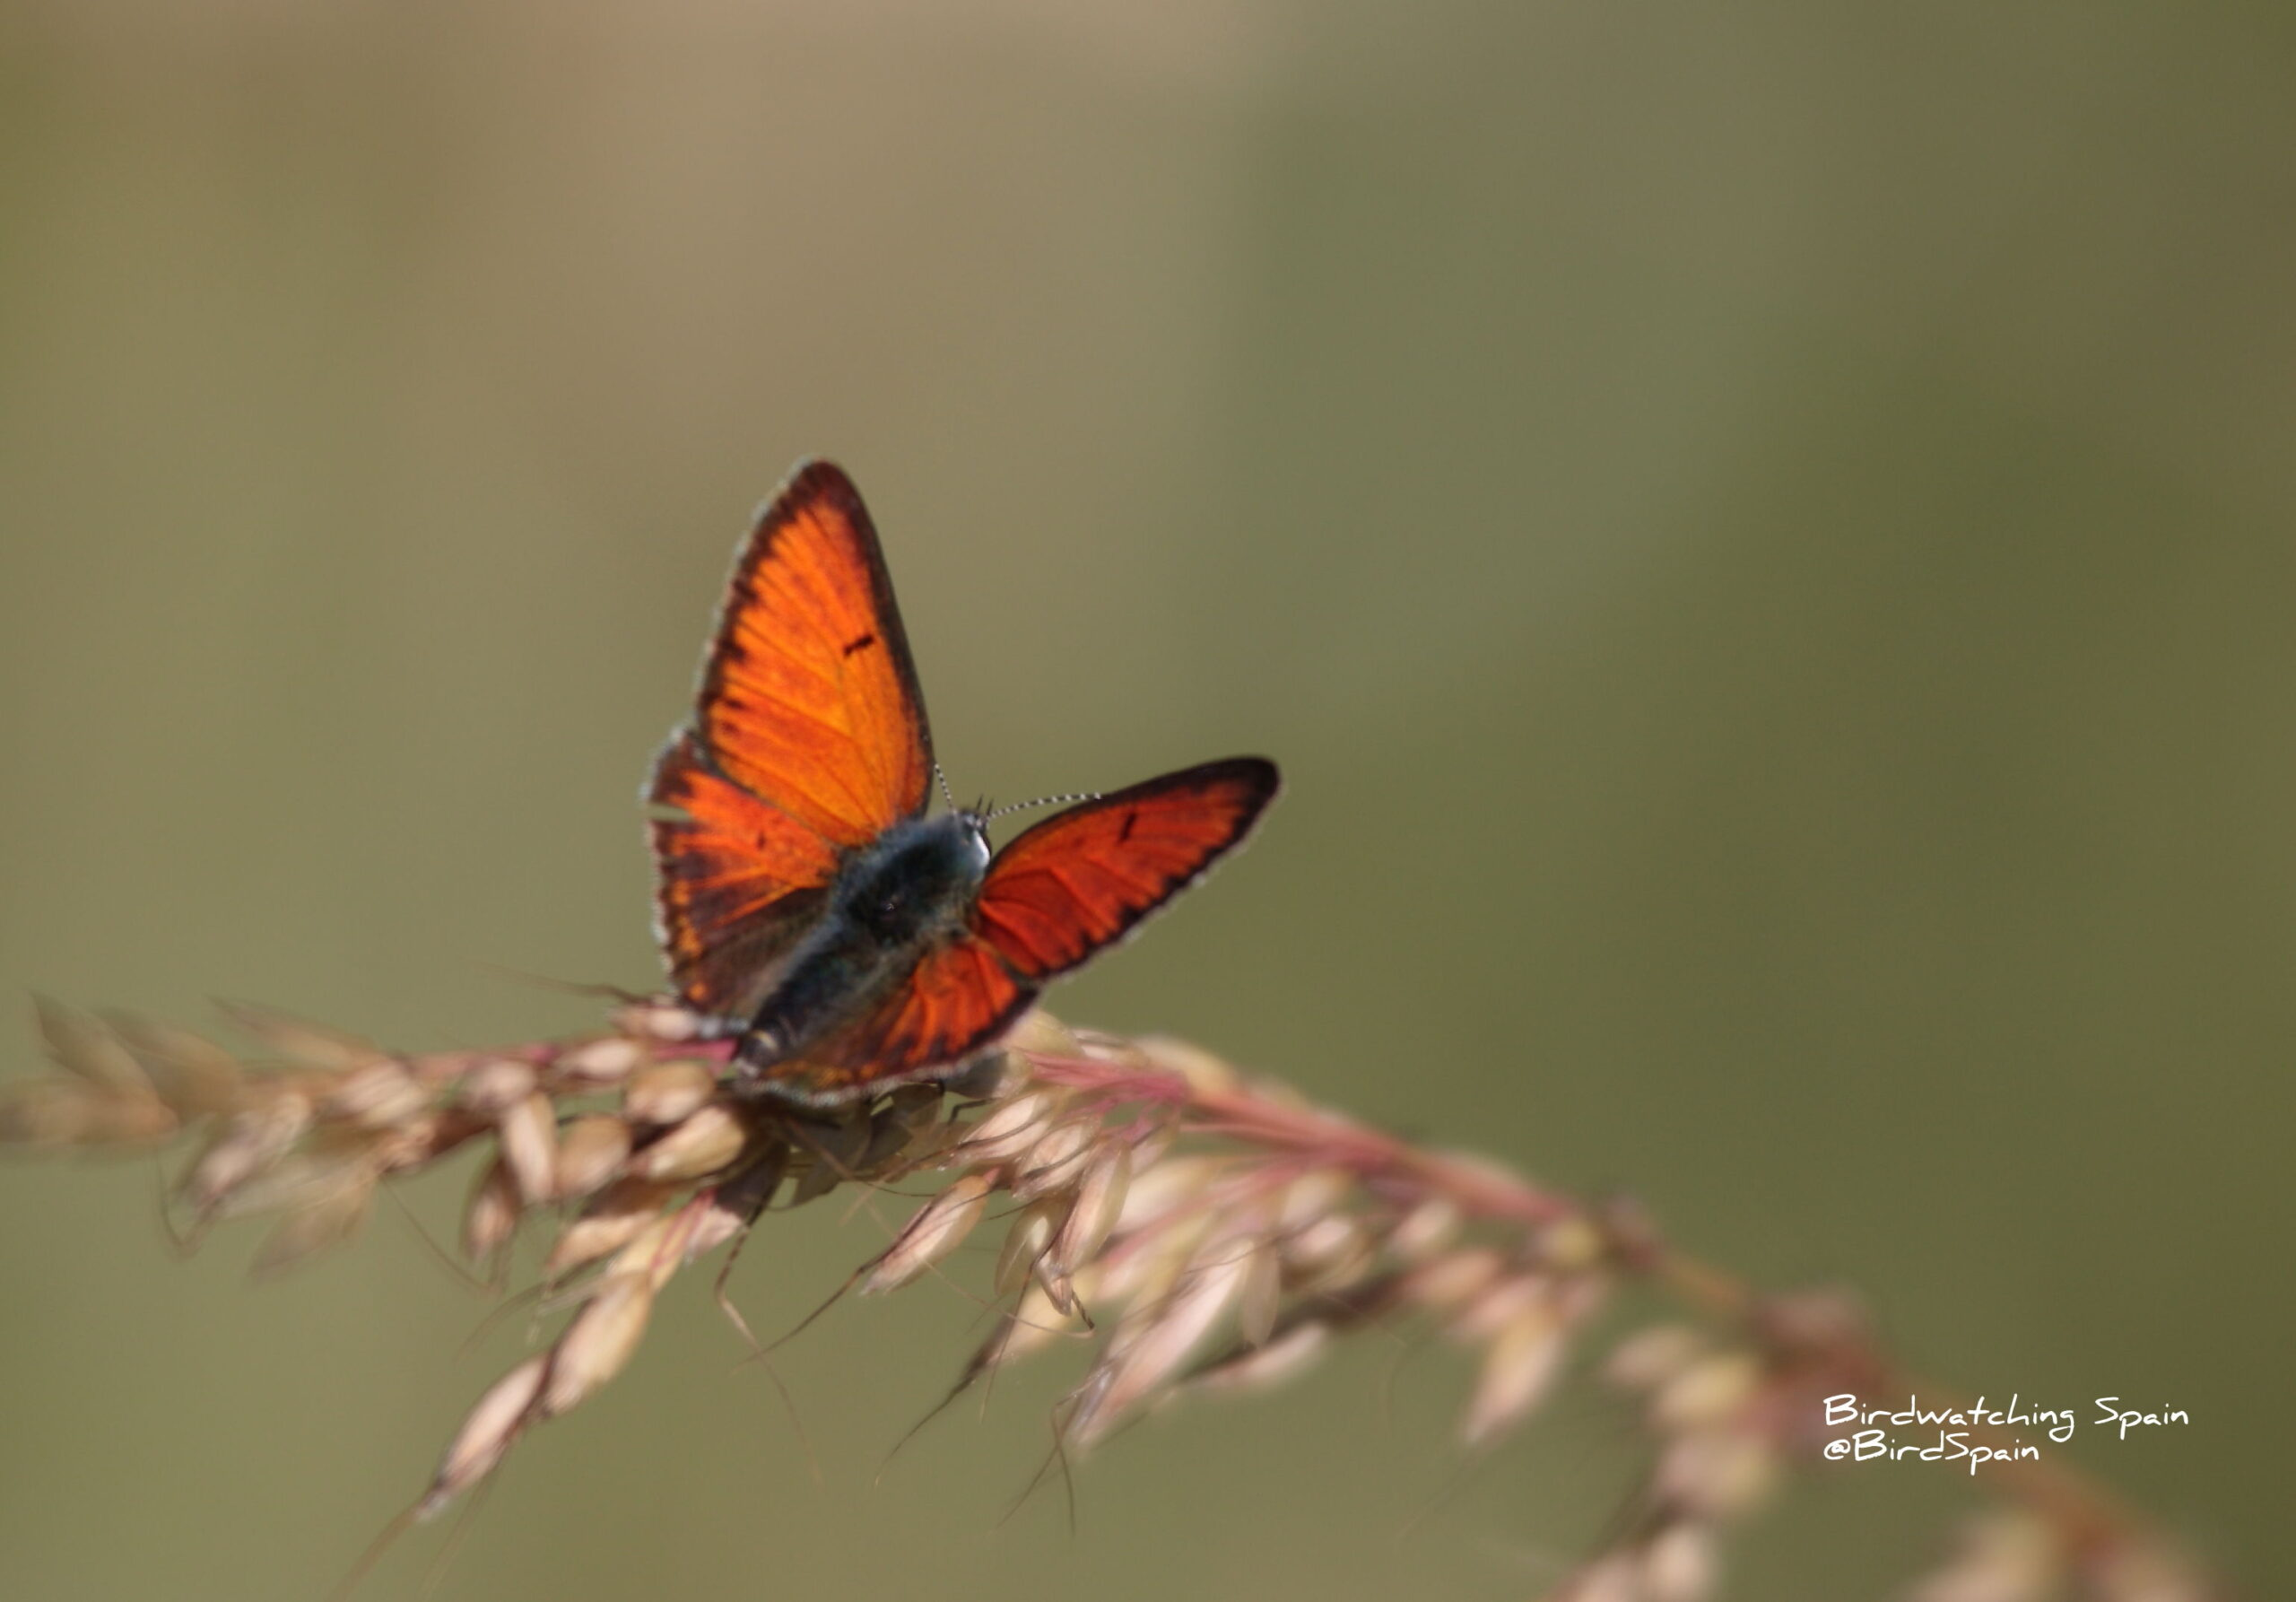 Buterfly in Cantabrian mountains